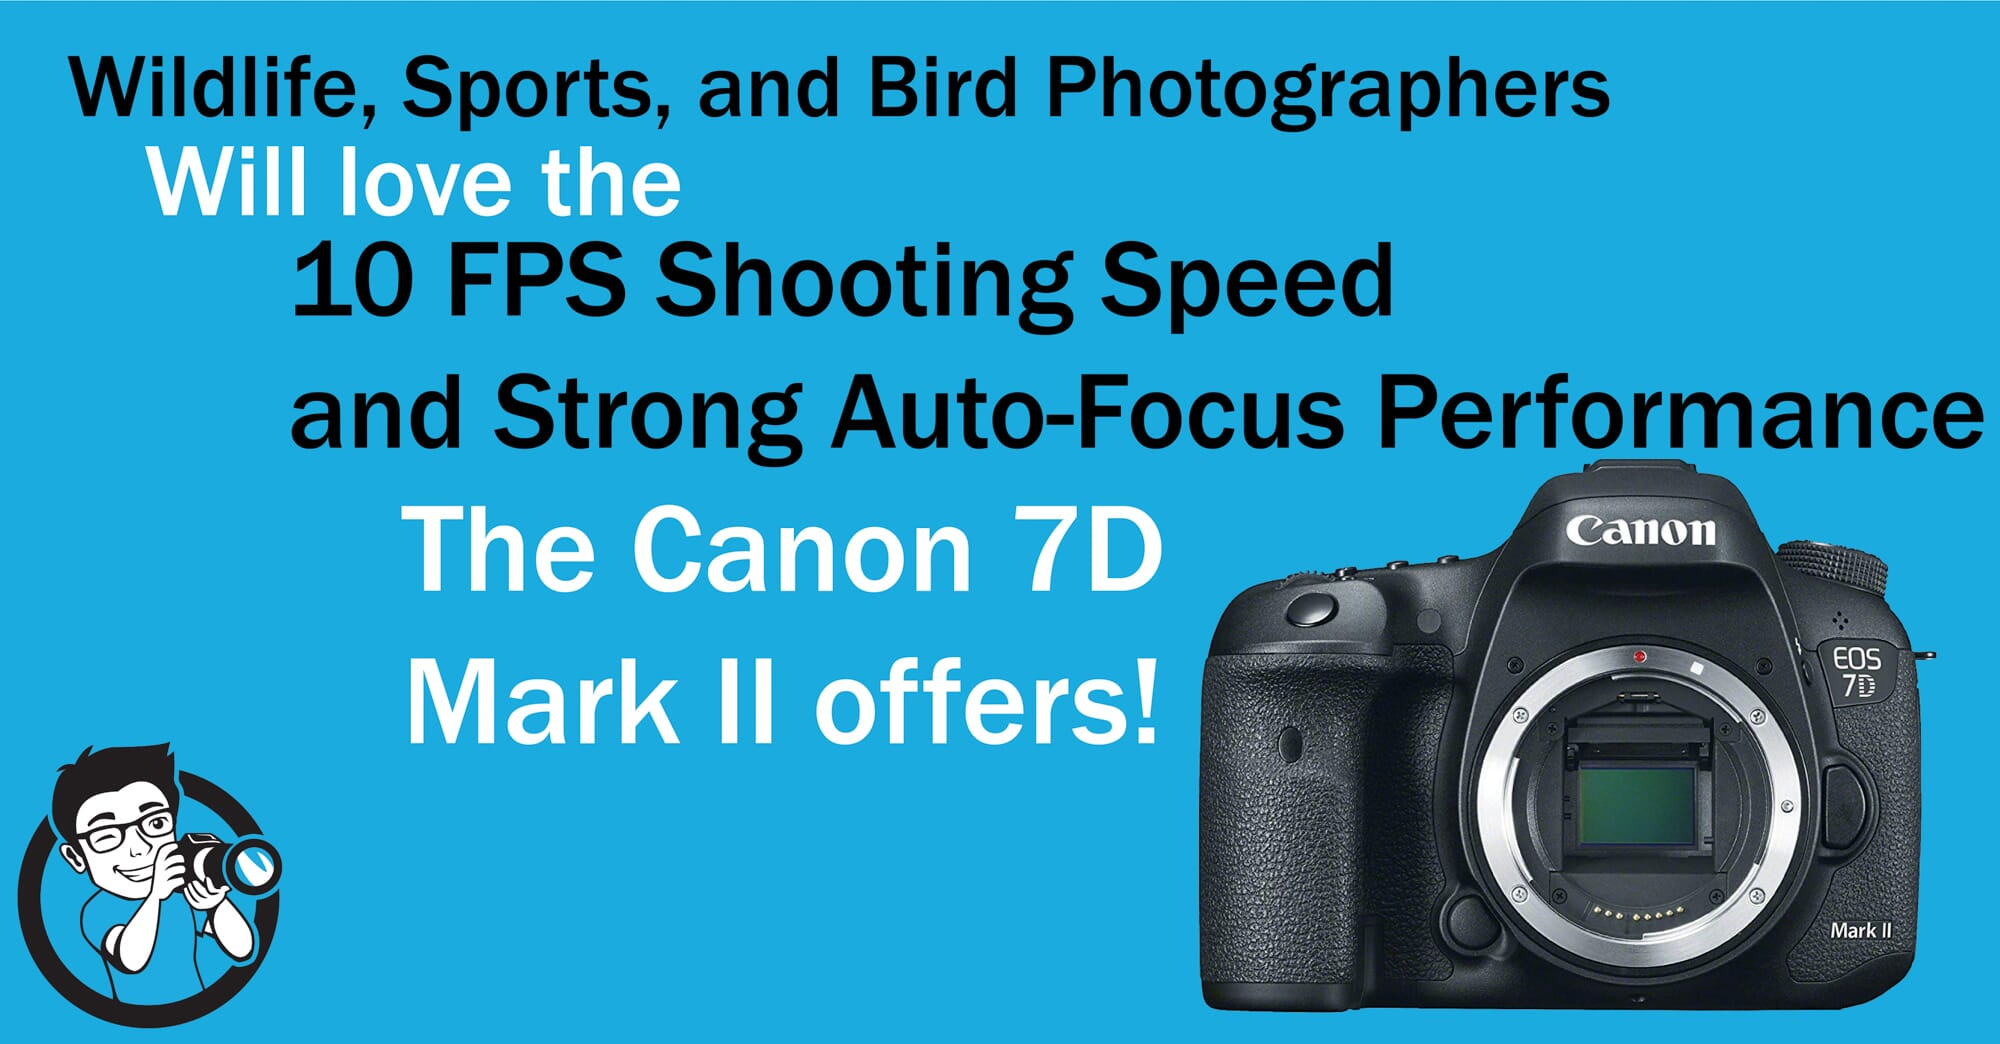 Canon 6D vs 7D 7D specials